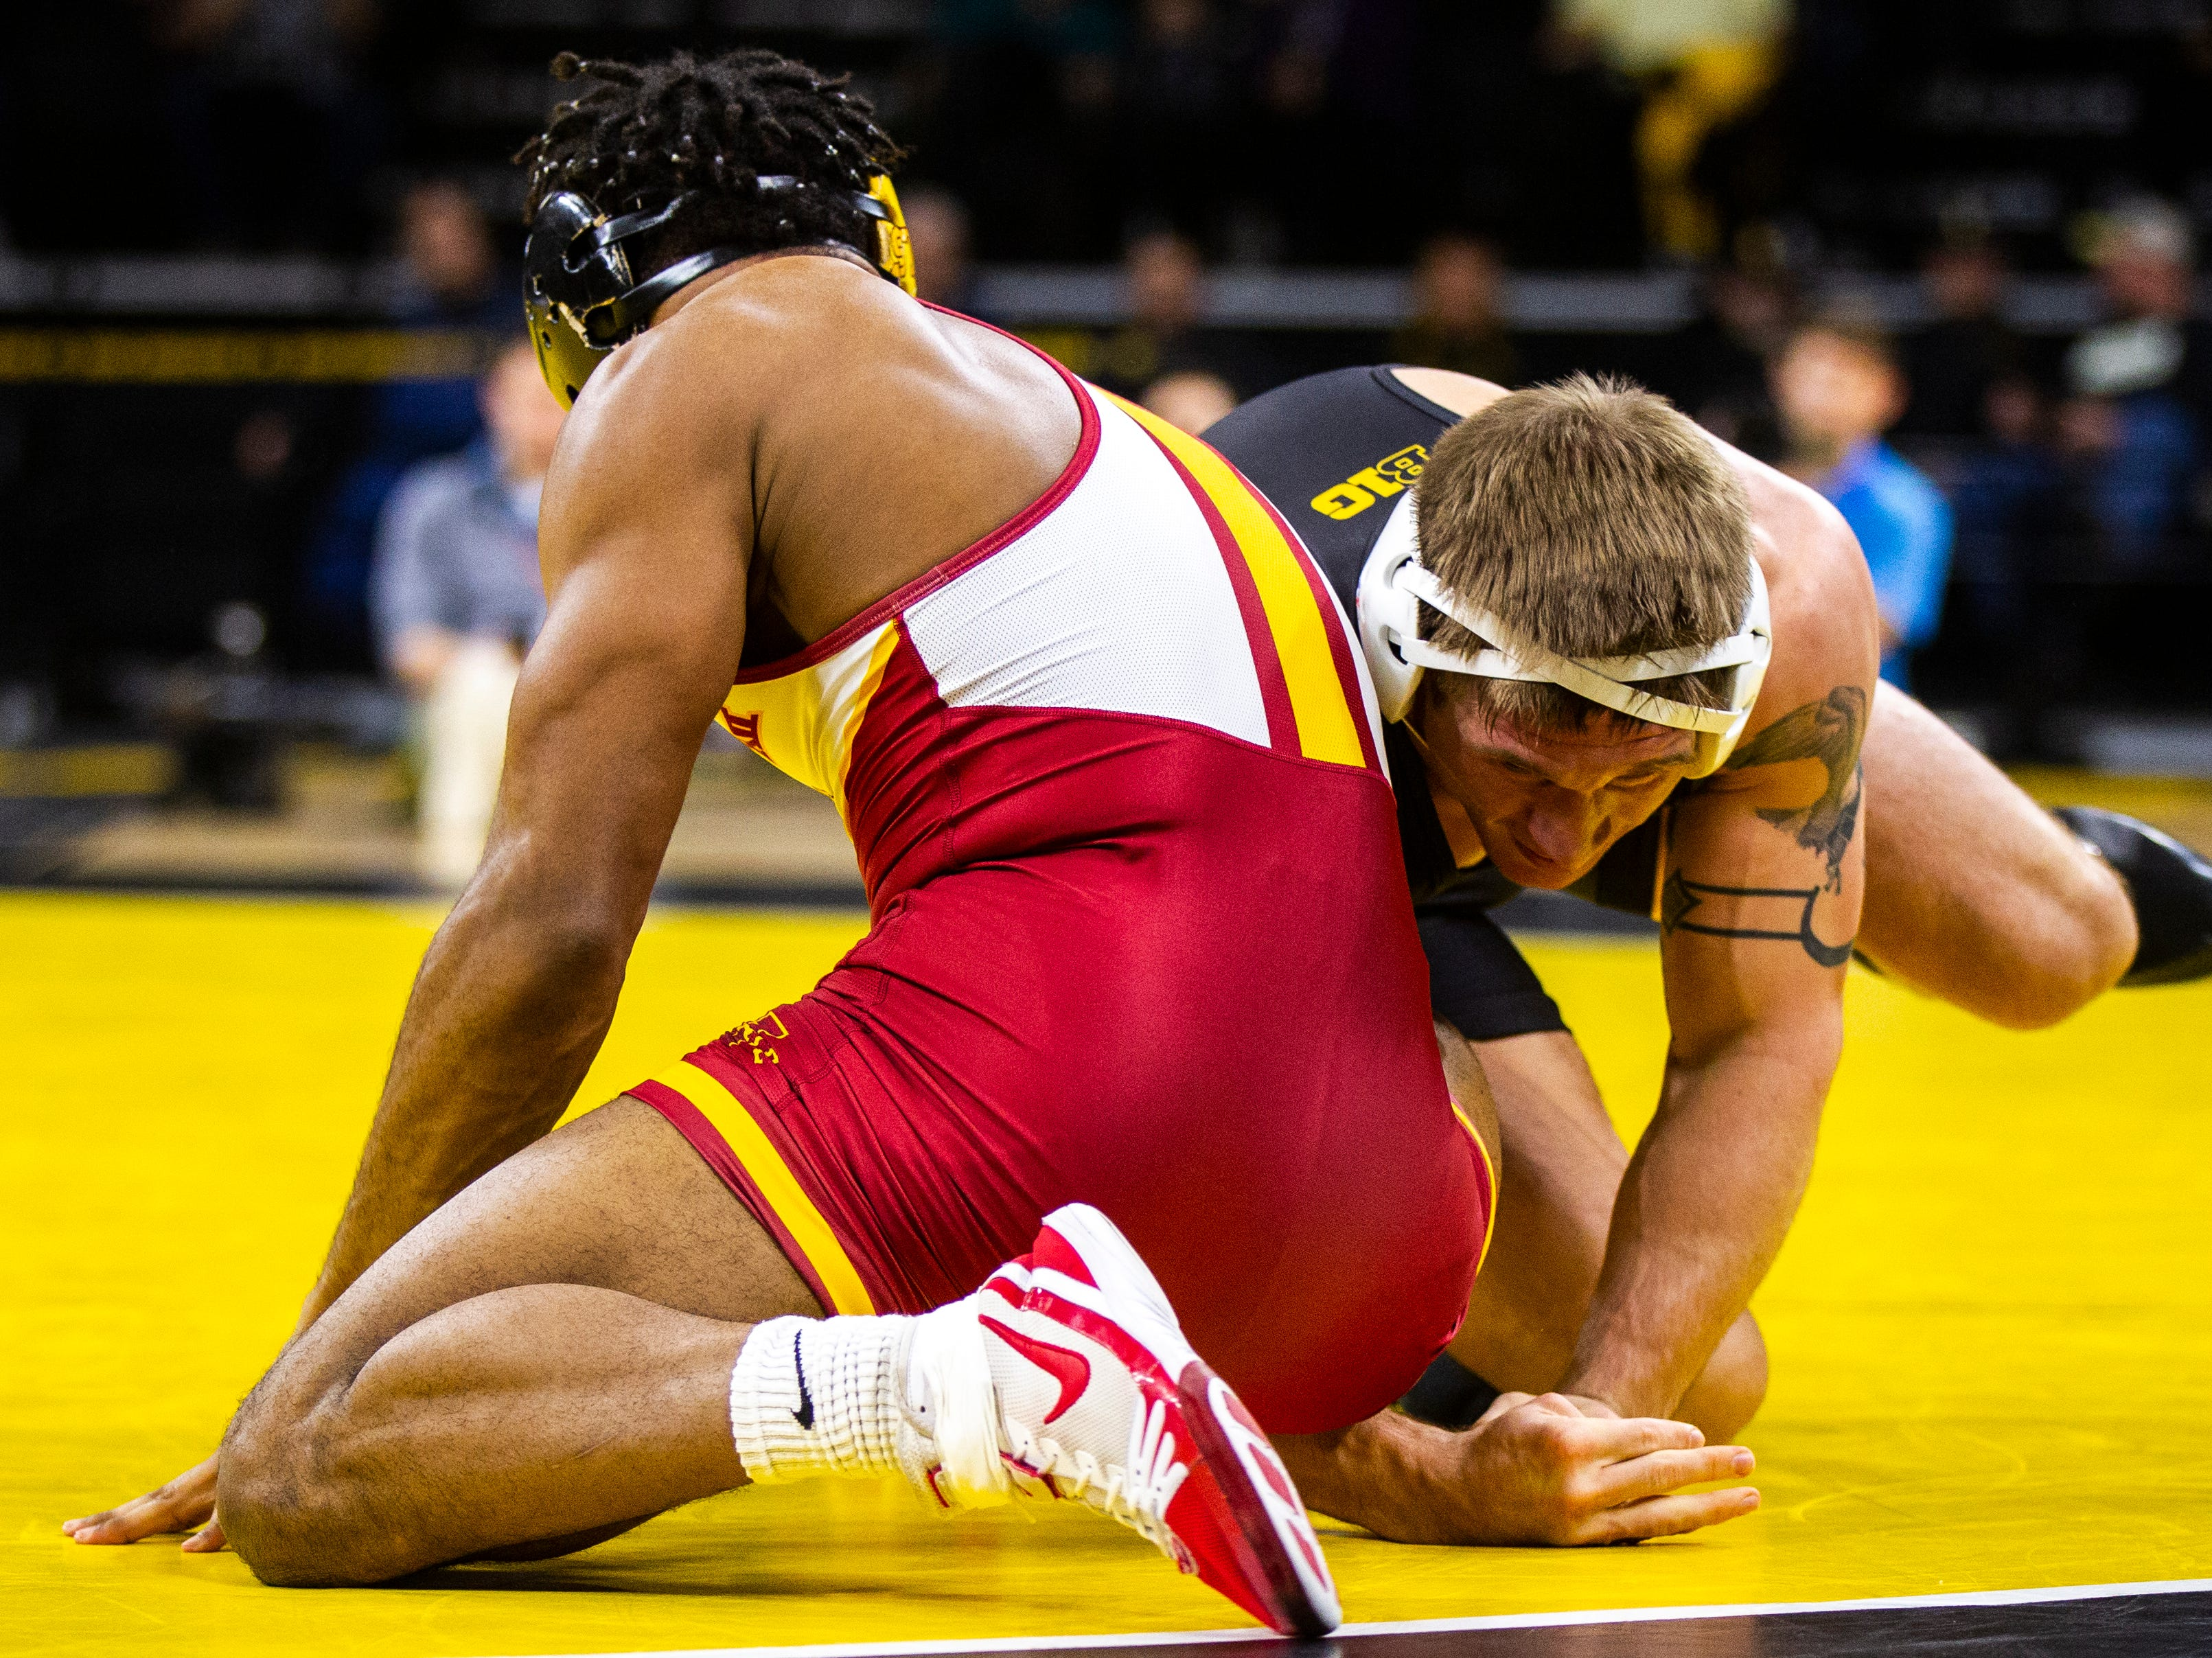 Iowa's Cash Wilcke, right, wrestles Iowa State's Sam Colbray at 184 during a NCAA Cy-Hawk series wrestling dual on Saturday, Dec. 1, 2018, at Carver-Hawkeye Arena in Iowa City.